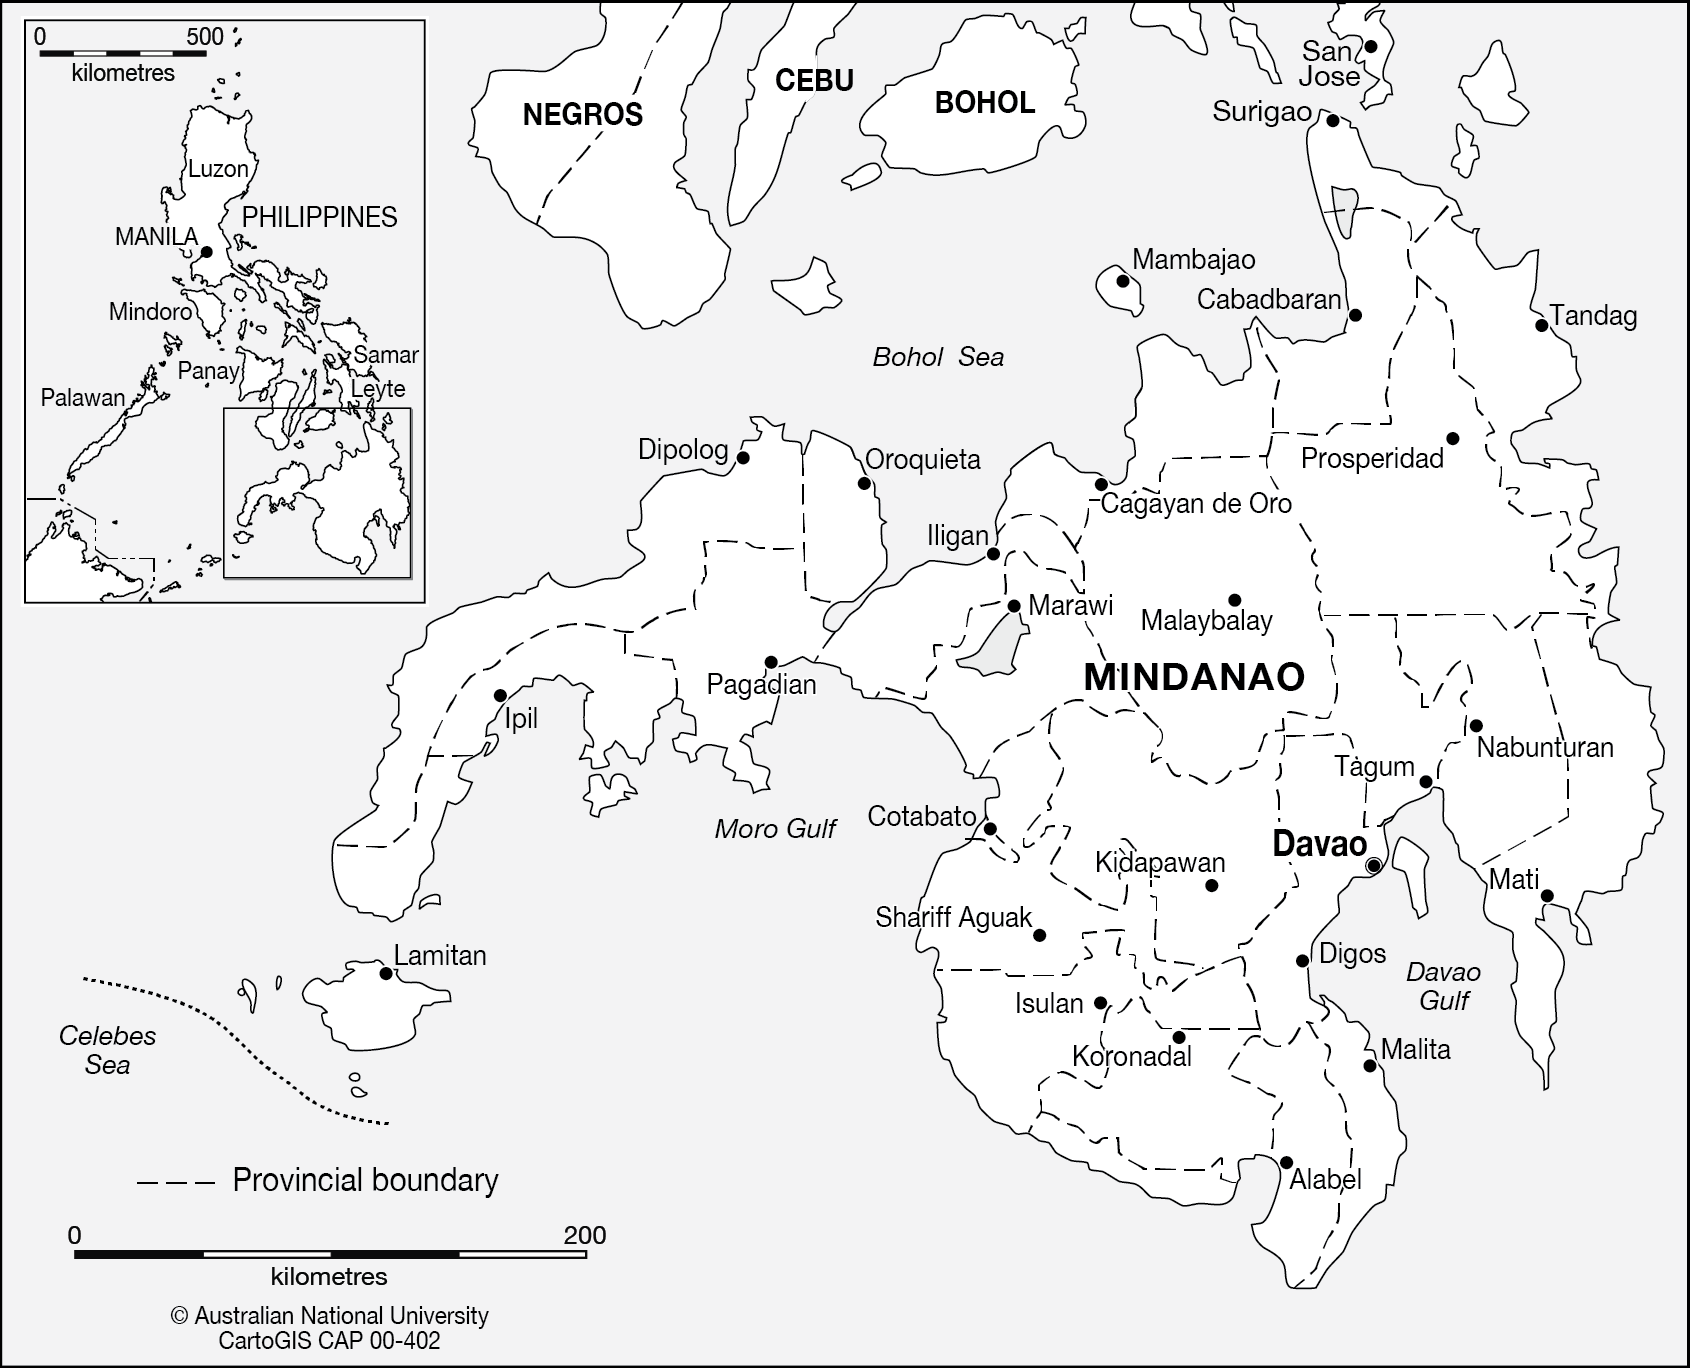 Armm map clipart black and white clip royalty free download Mindanao Map (104+ images in Collection) Page 1 clip royalty free download